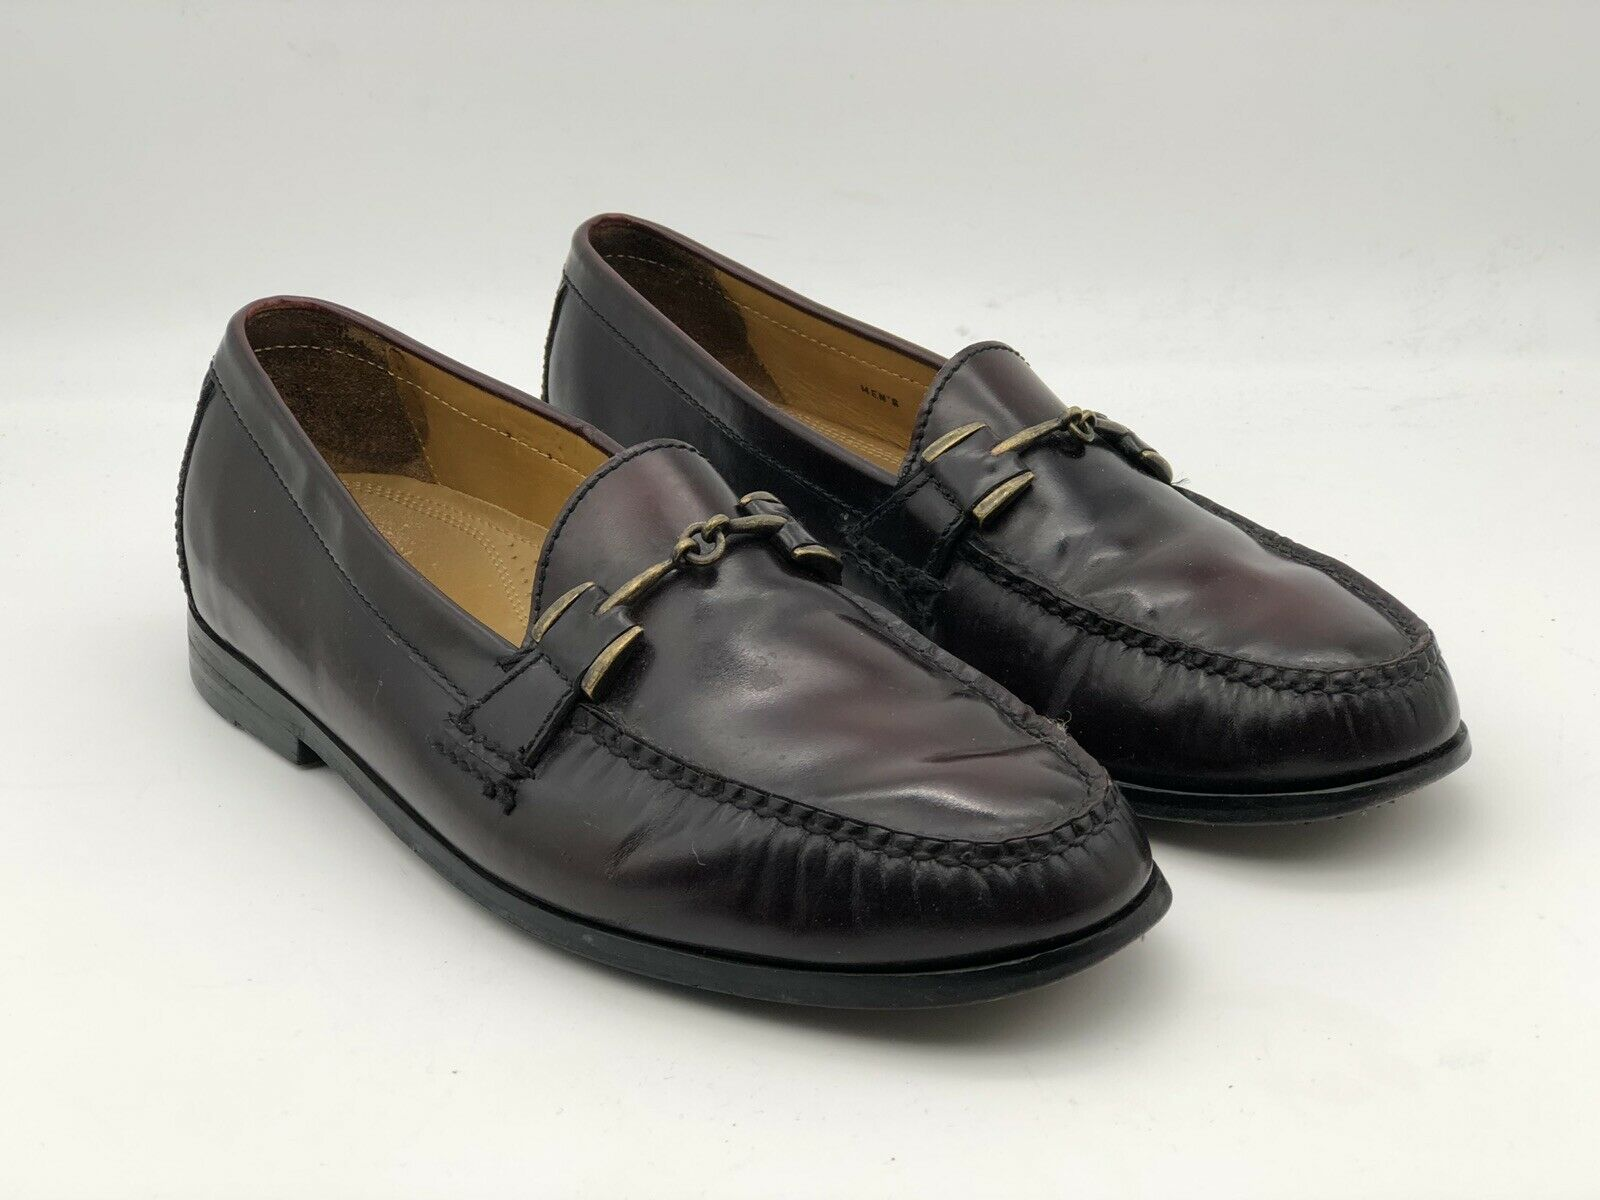 Cole Haan Mens Burgundy Leather Moc Toe Pinch Horsebit Loafers shoes 9.5 M